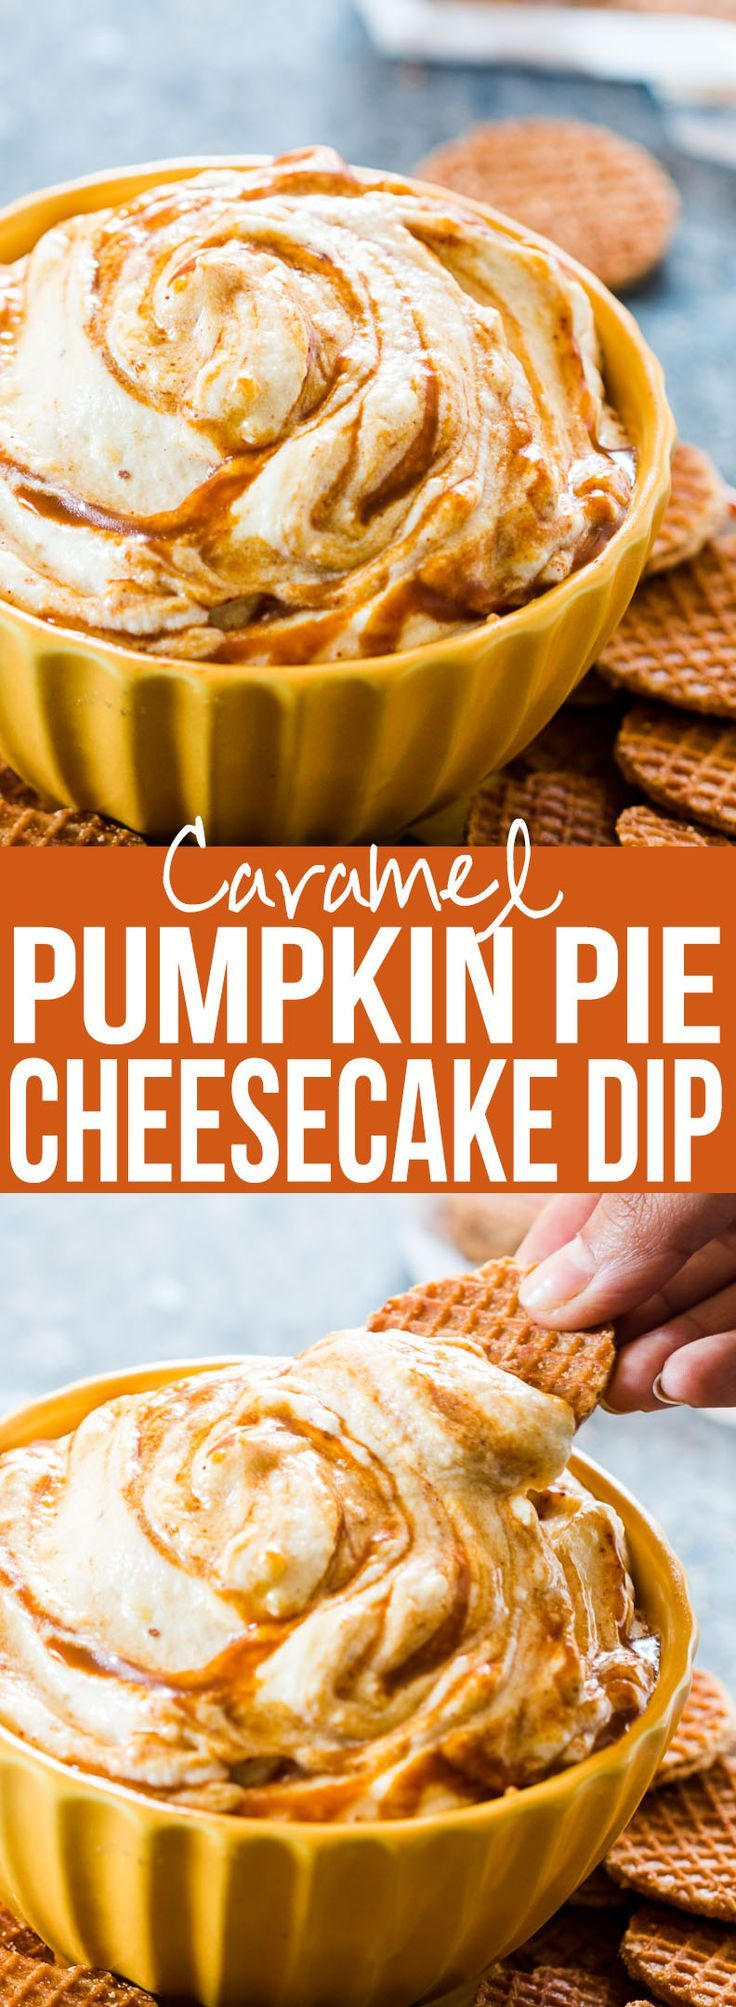 This caramel pumpkin pie cheesecake dip is a breeze to make and the perfect fall holiday appetizer or dessert. We use whipped cream instead of Cool Whip for more volume and flavour. That's one less processed ingredient for you to worry about, which makes this slightly healthier too. Serve it with graham crackers or like we did - waffle bites! via /my_foodstory/